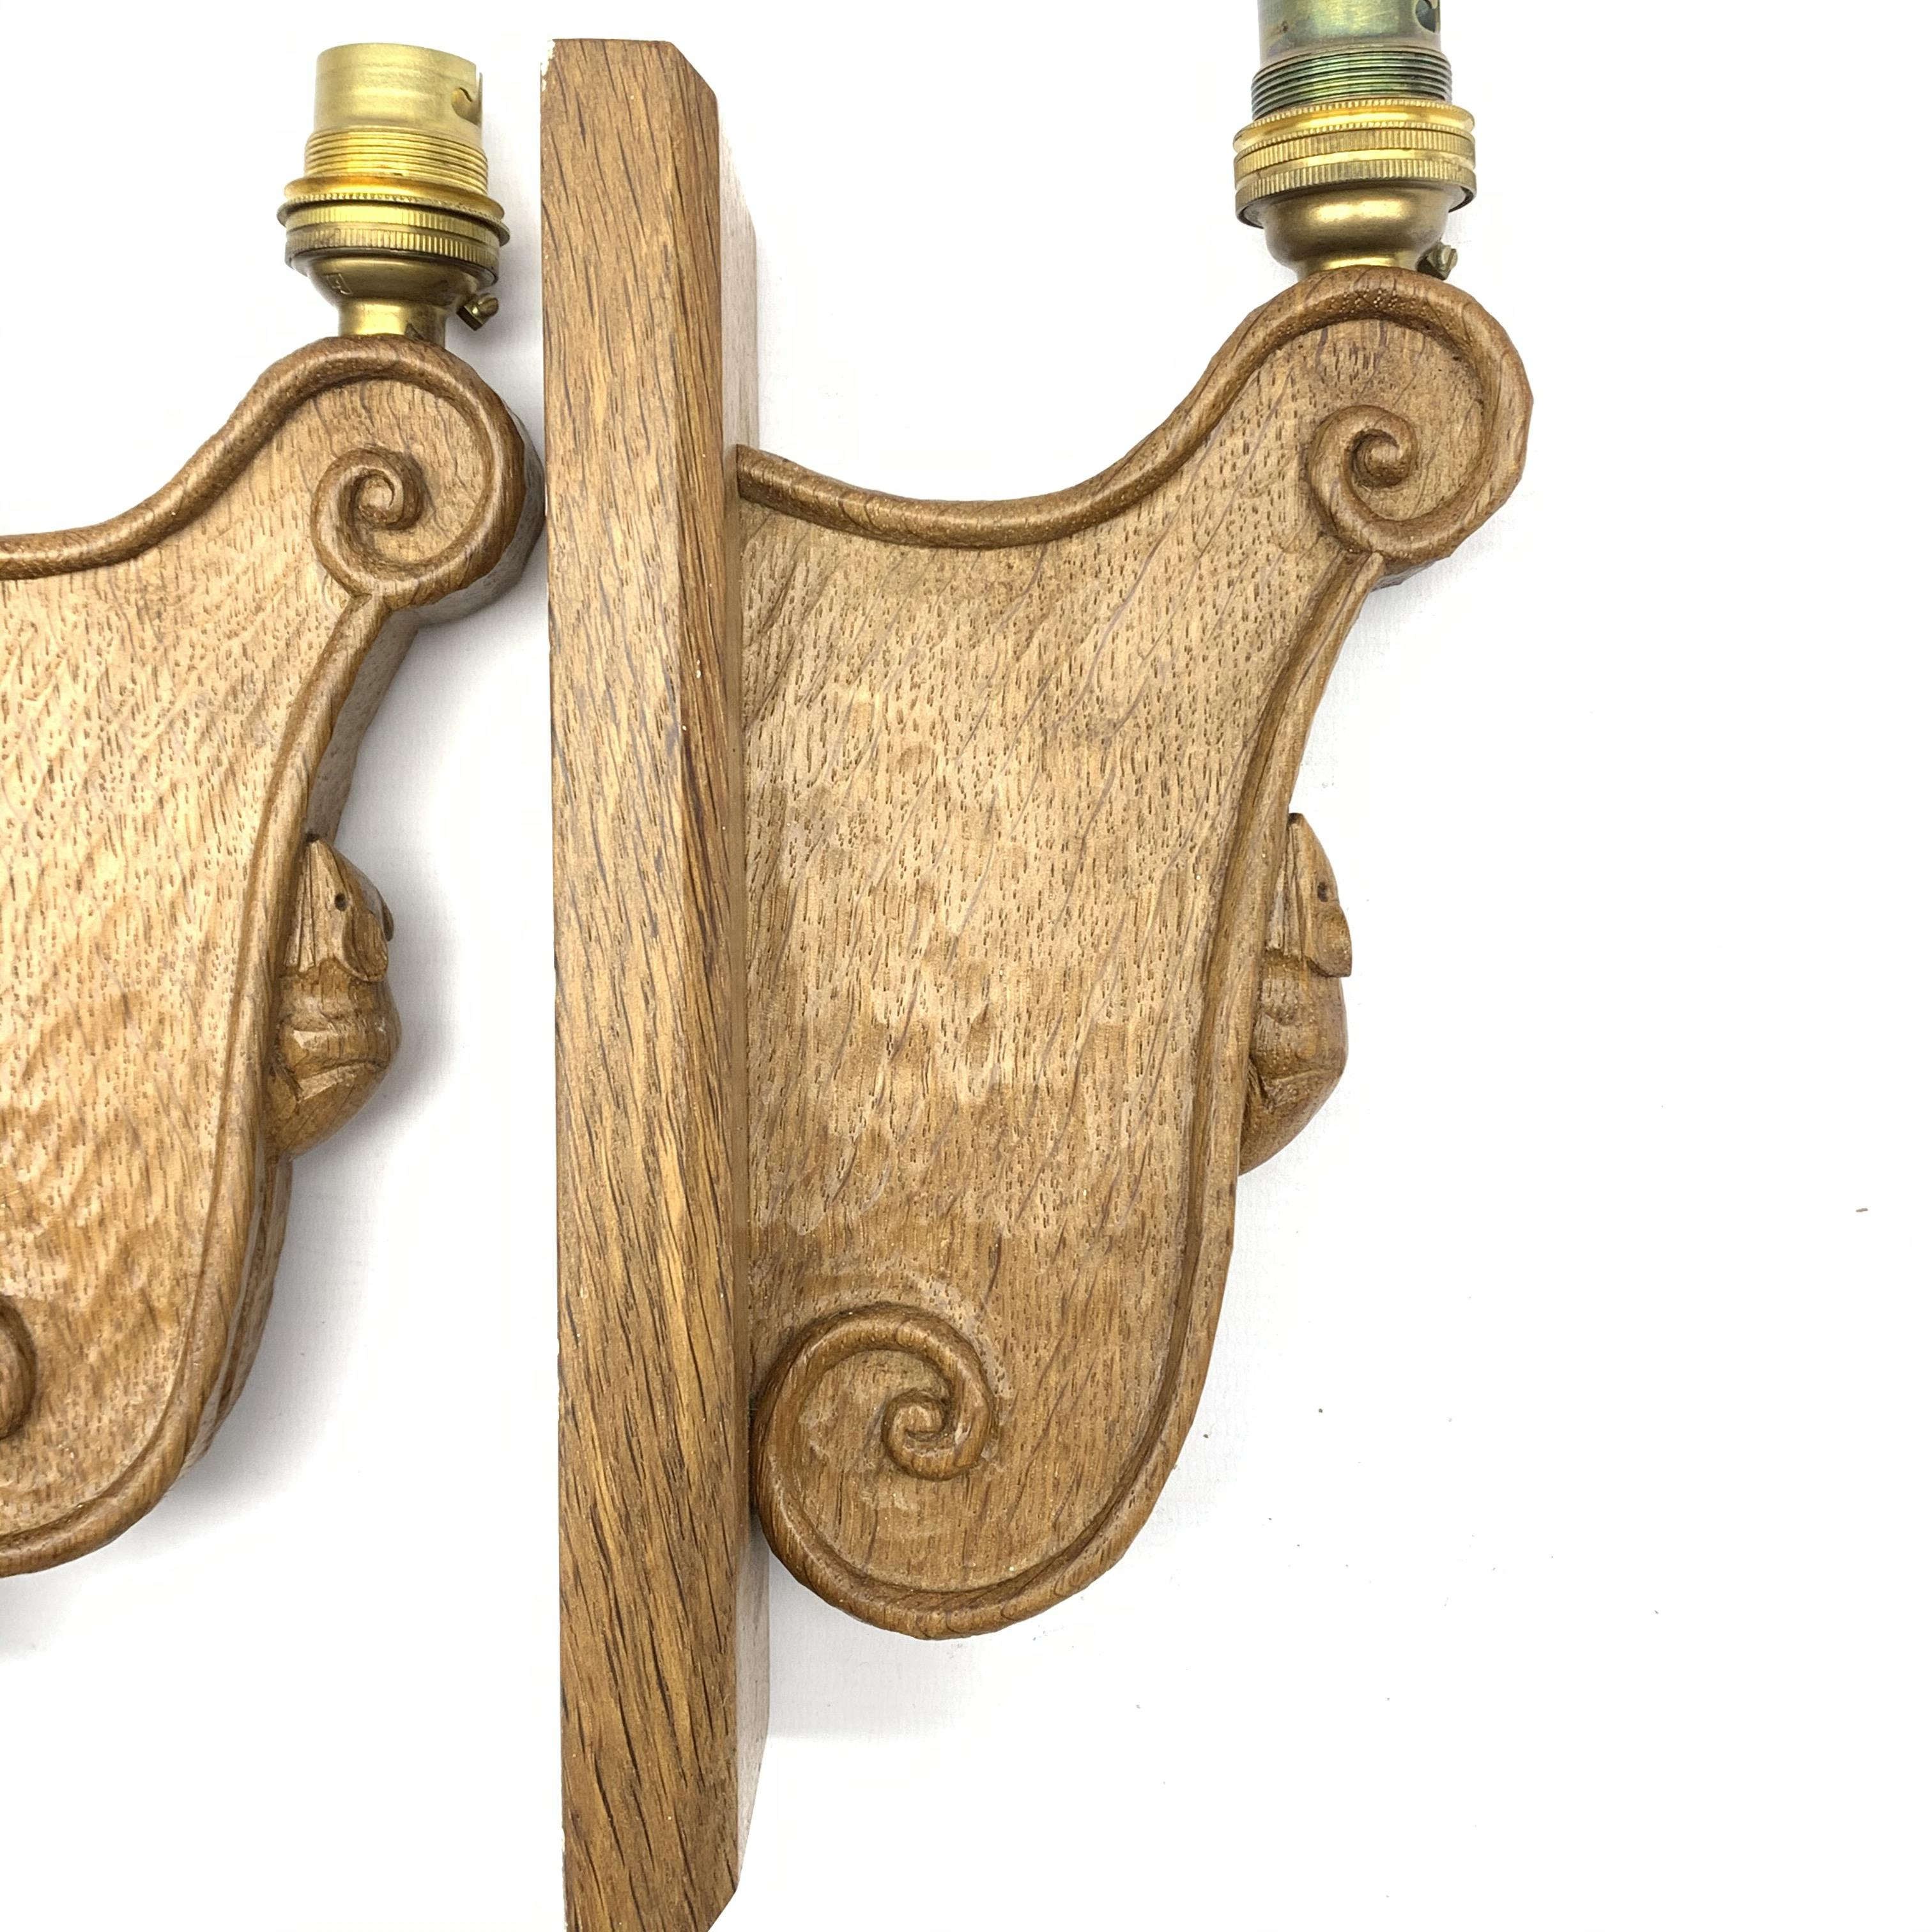 'Mouseman' pair carved oak wall sconces - Image 4 of 5